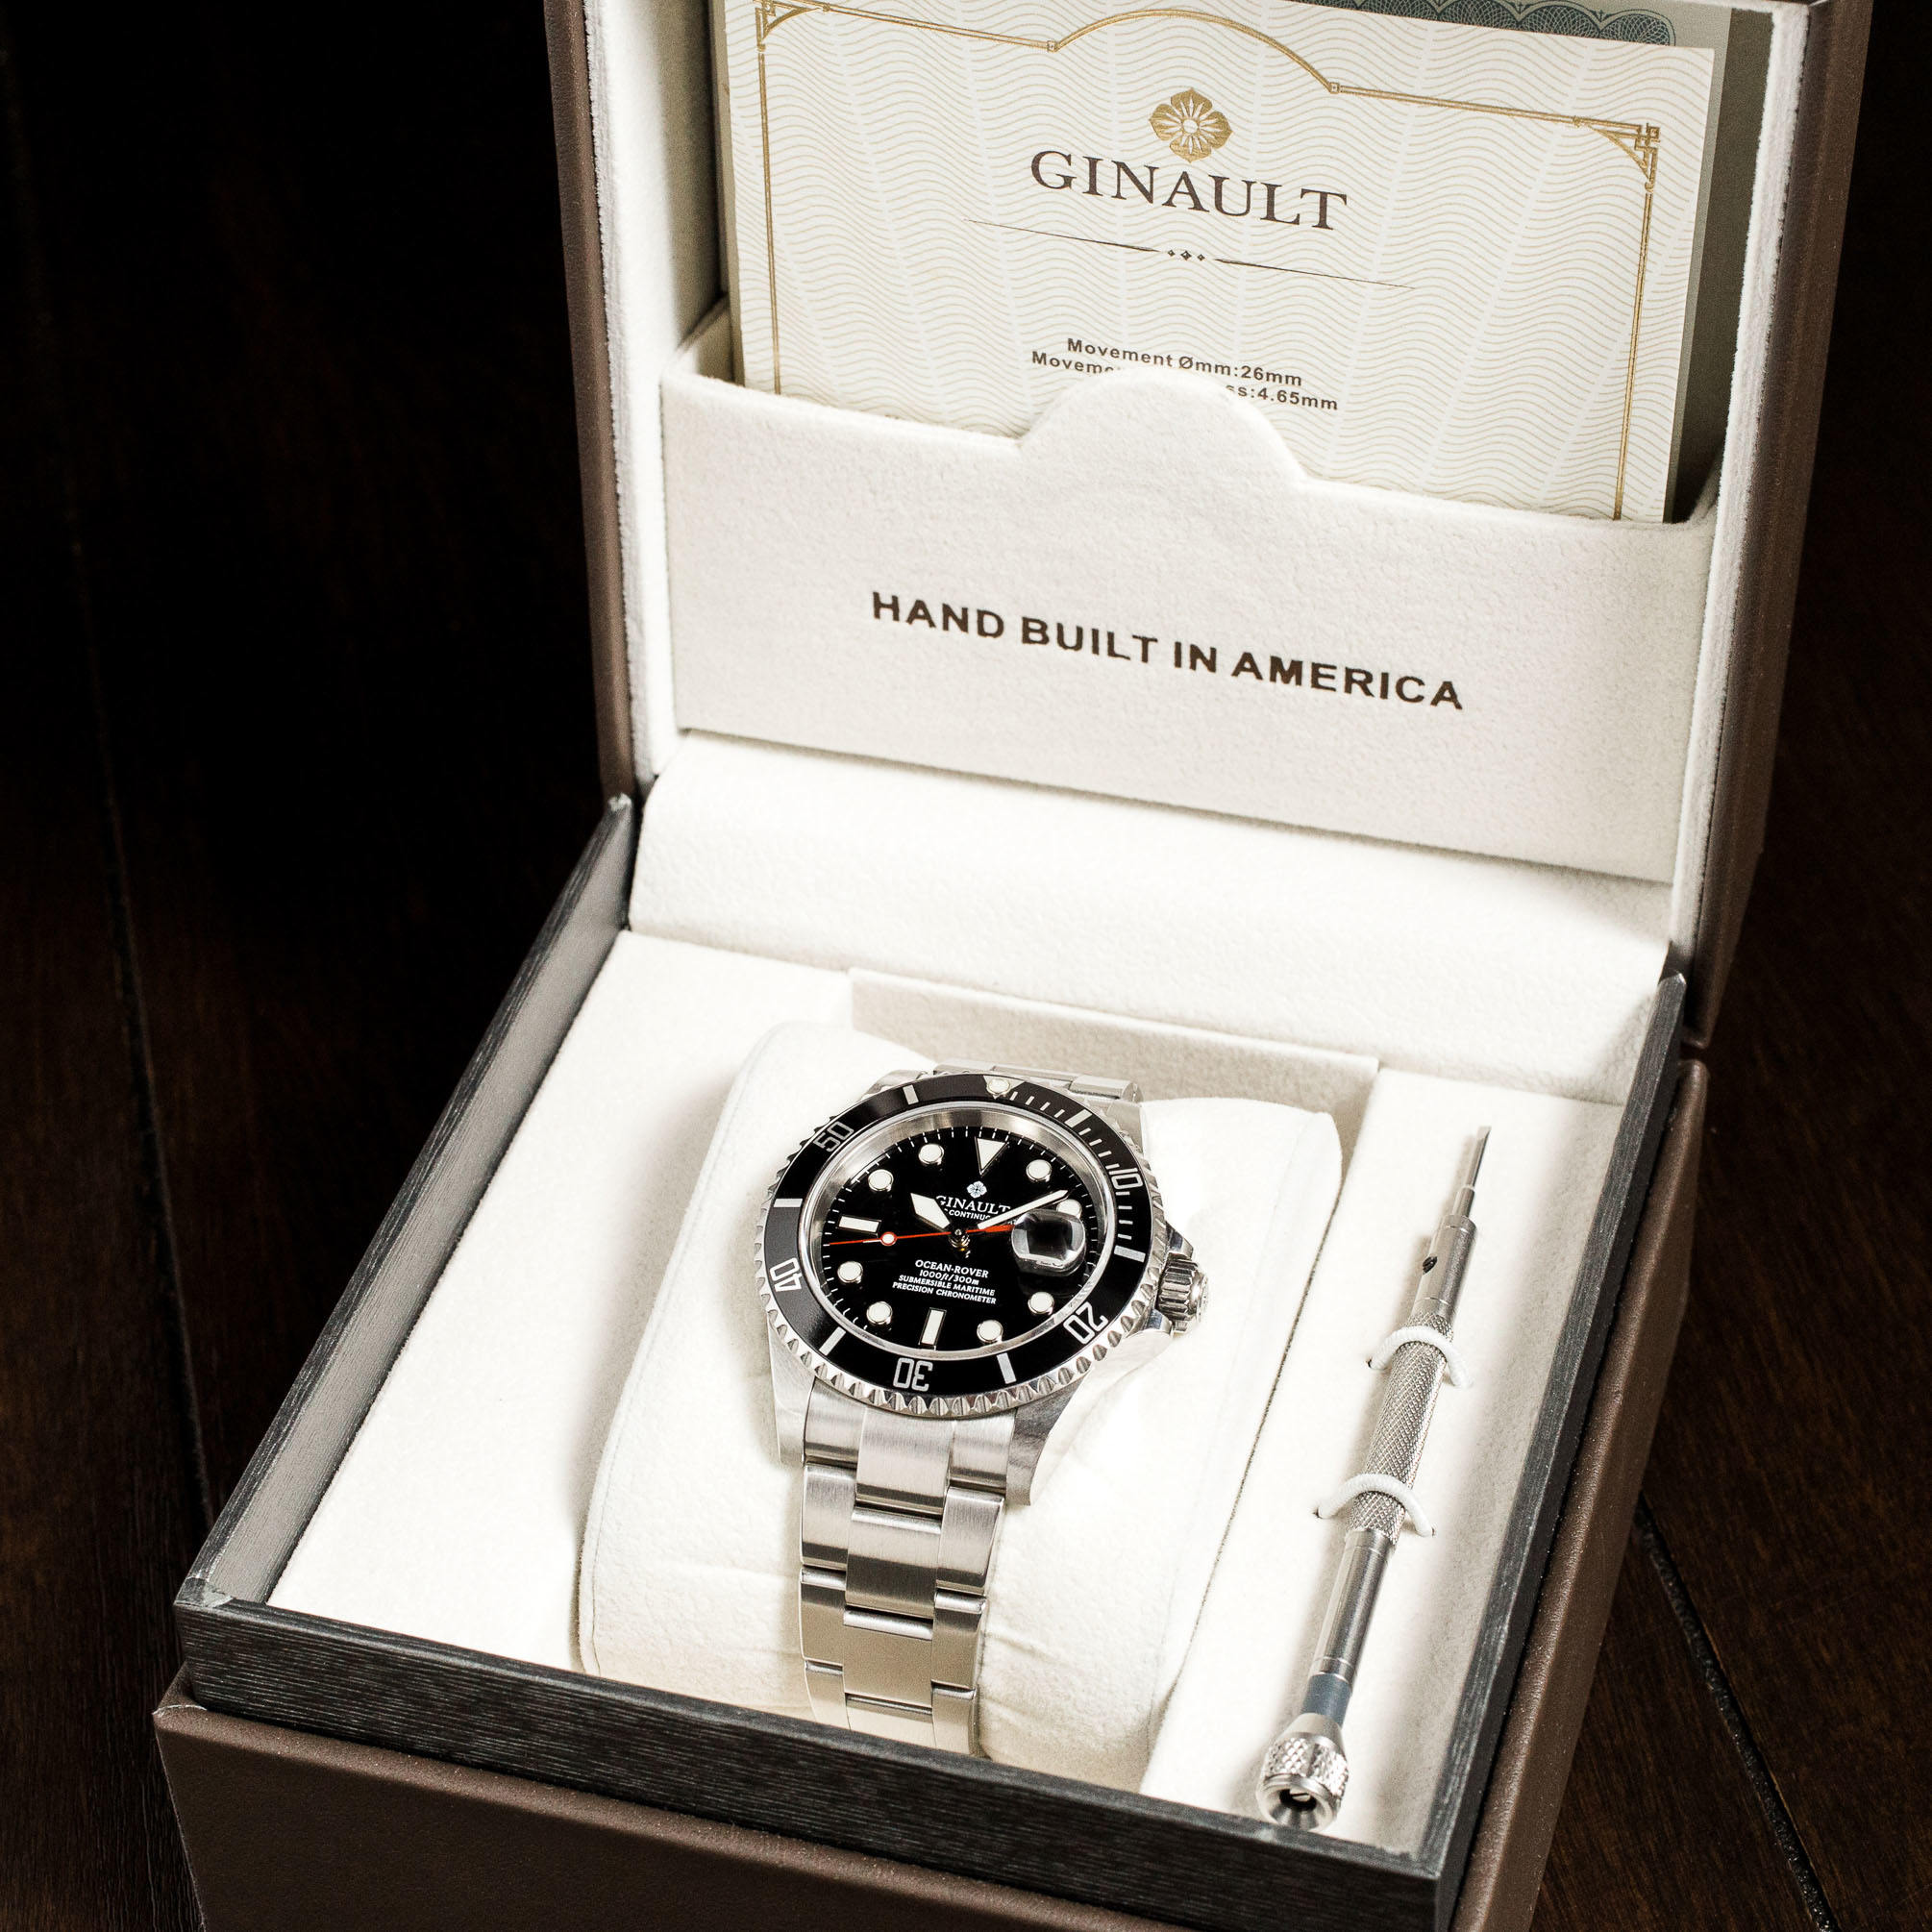 Ginault unboxing